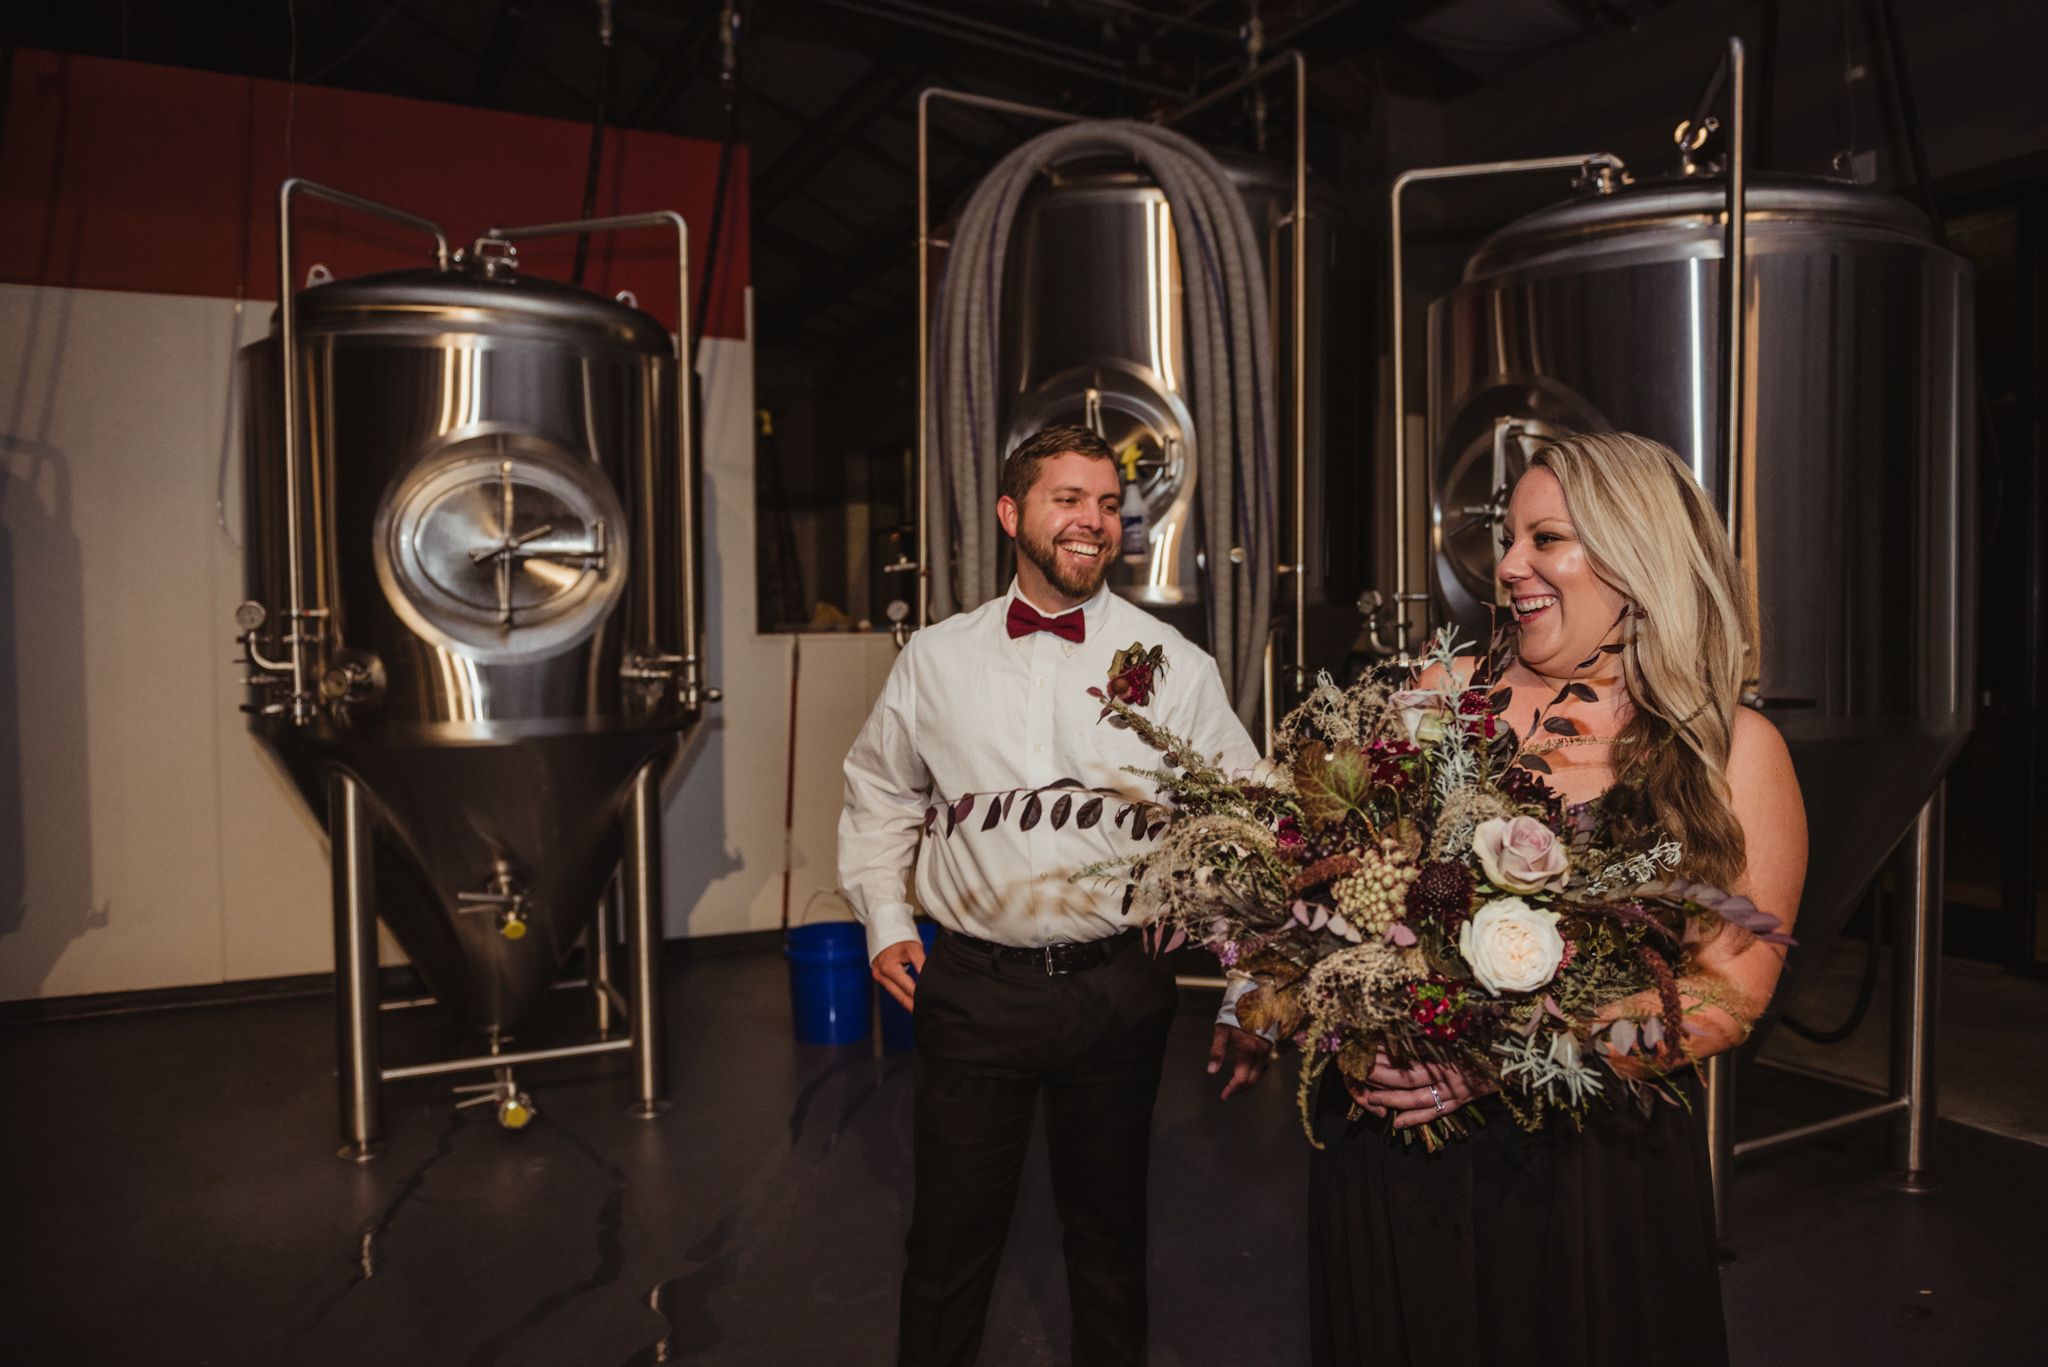 bride-and-groom-portraits-in-the-brewing-room-at-compass-rose.jpg